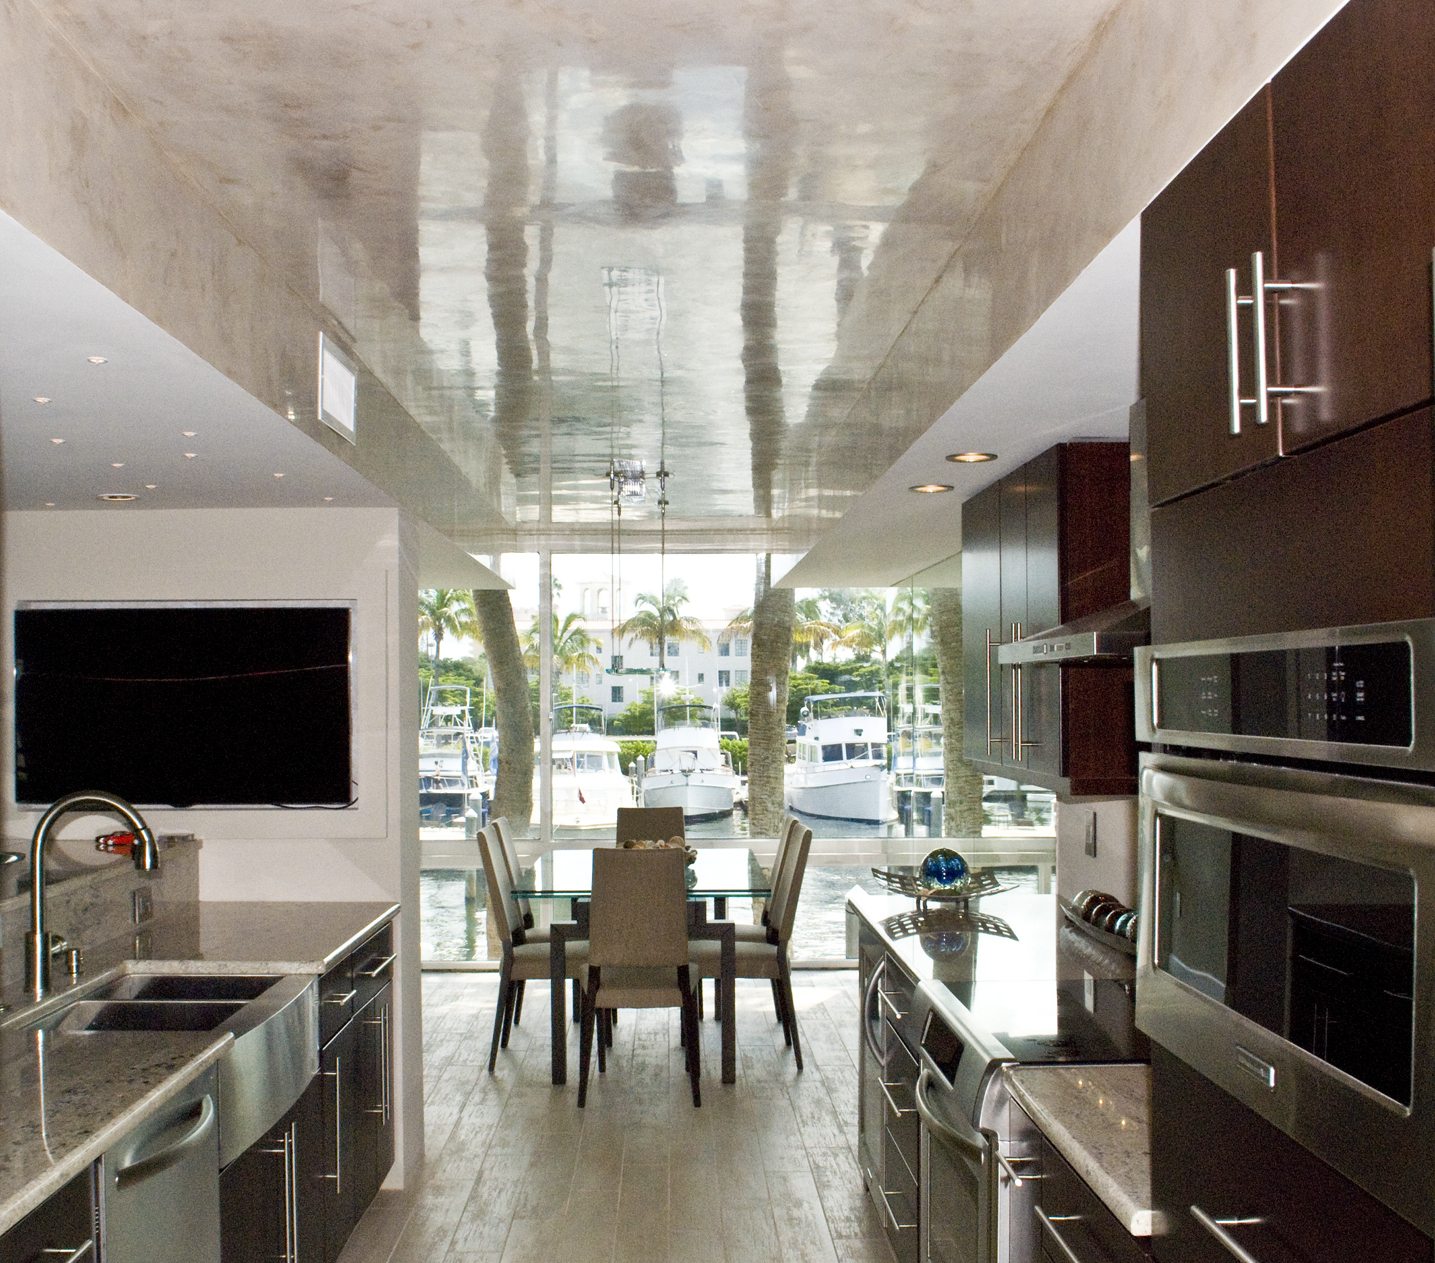 A-slick-Venetian-Plaster-ceiling-reflects-the-water-for-this-marina-suite-with-a-renovated-kitchen-and-dining-room.jpg